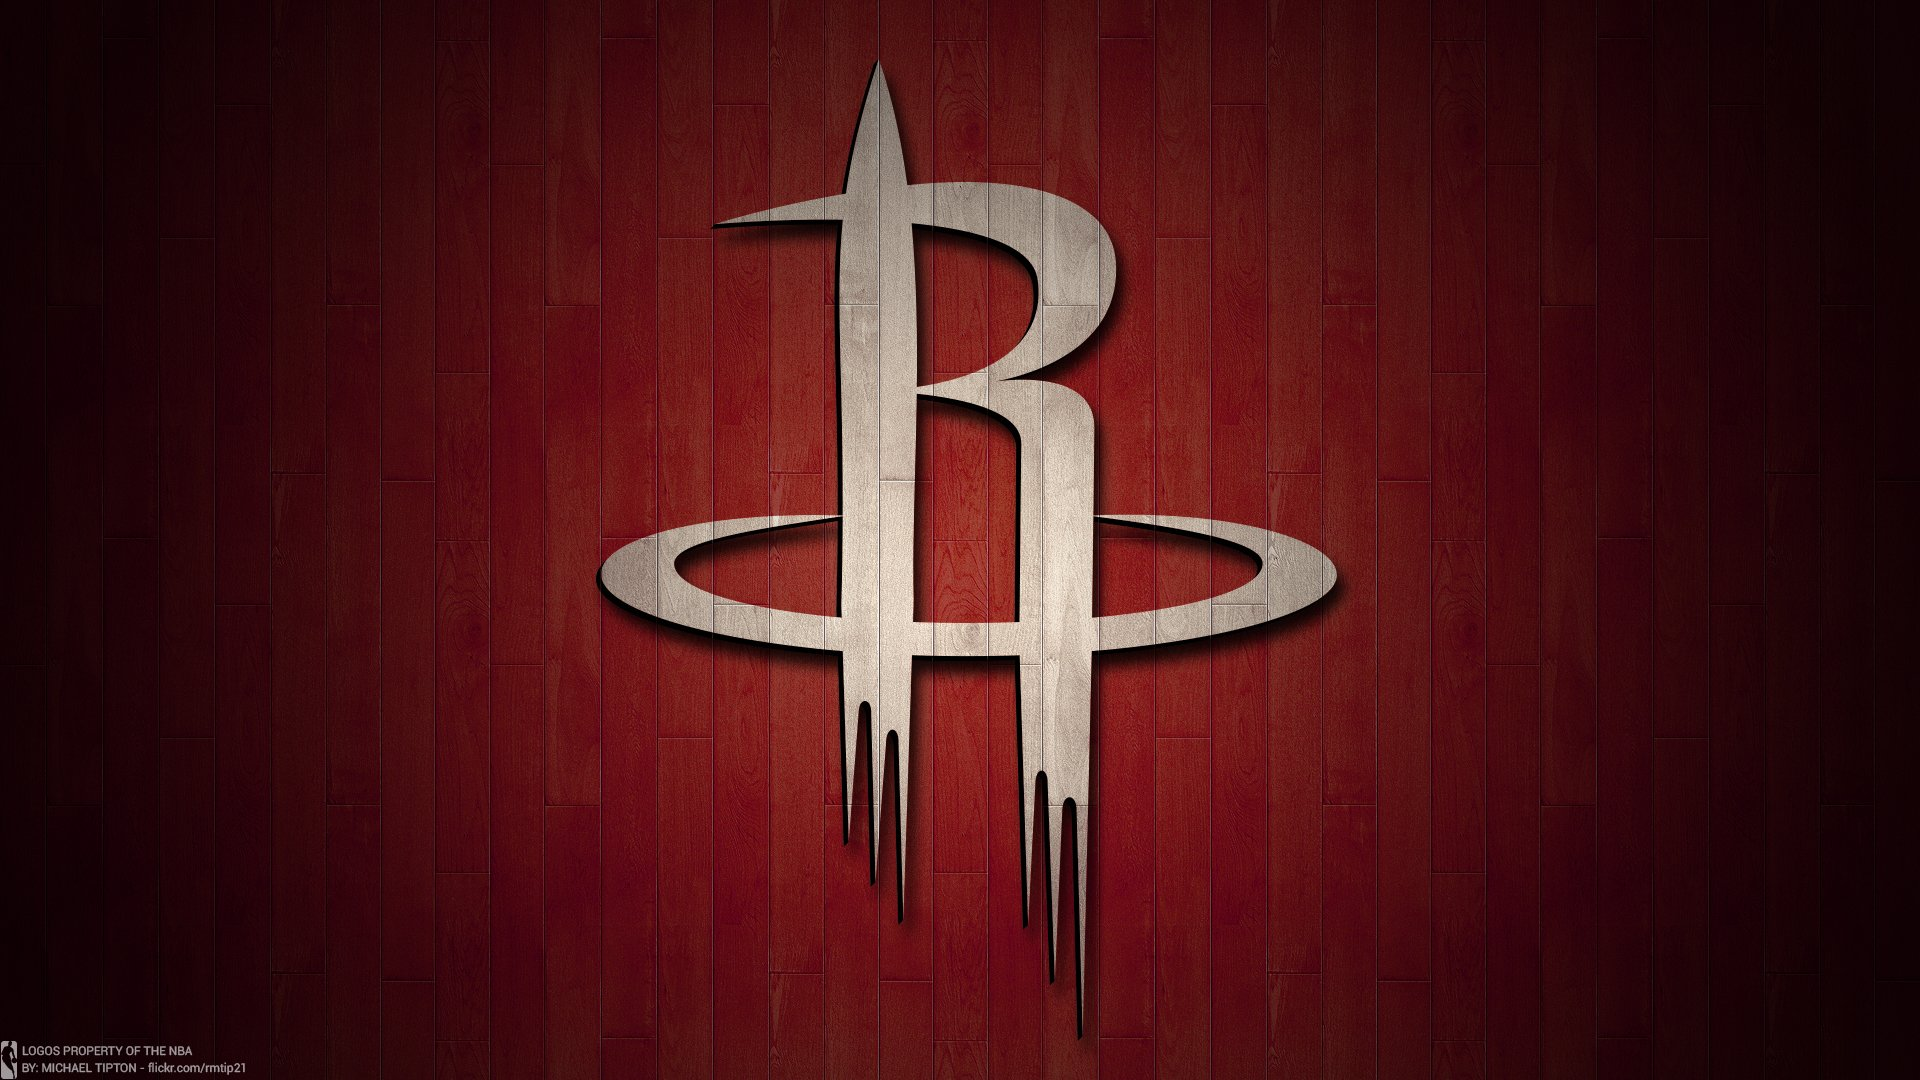 Hd wallpaper nba - Houston Rockets Basketball Nba 1920x1080 Px Wallpapers Hd